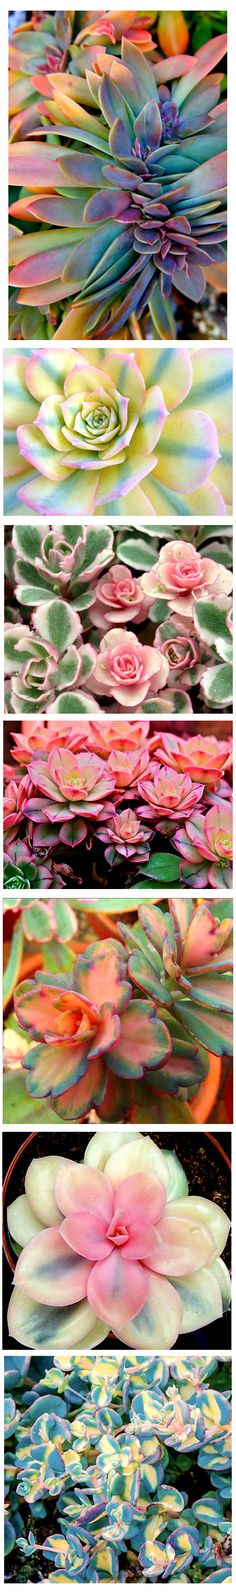 Variegated Succulents . ~~~~ The pictures are beautiful! I'd like to try some of these~~~~